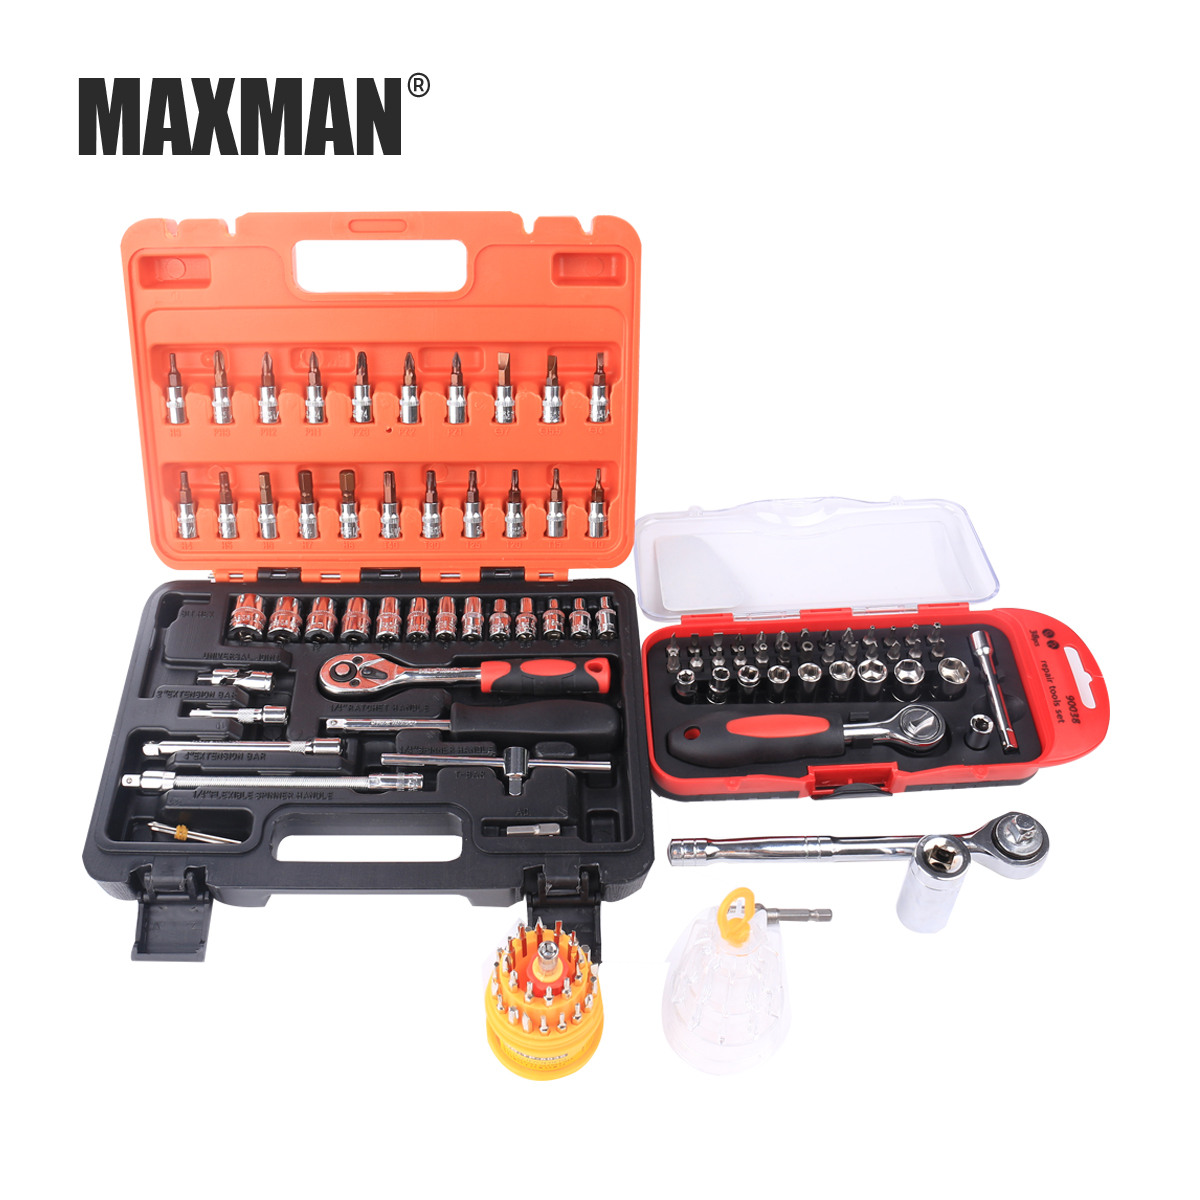 MAXMAN HAND TOOLS Socket Ratchet Torque Wrench Extension Bar Drill Bits Automobiles Repair Tools Kit Multifunction Hand Tool Kit